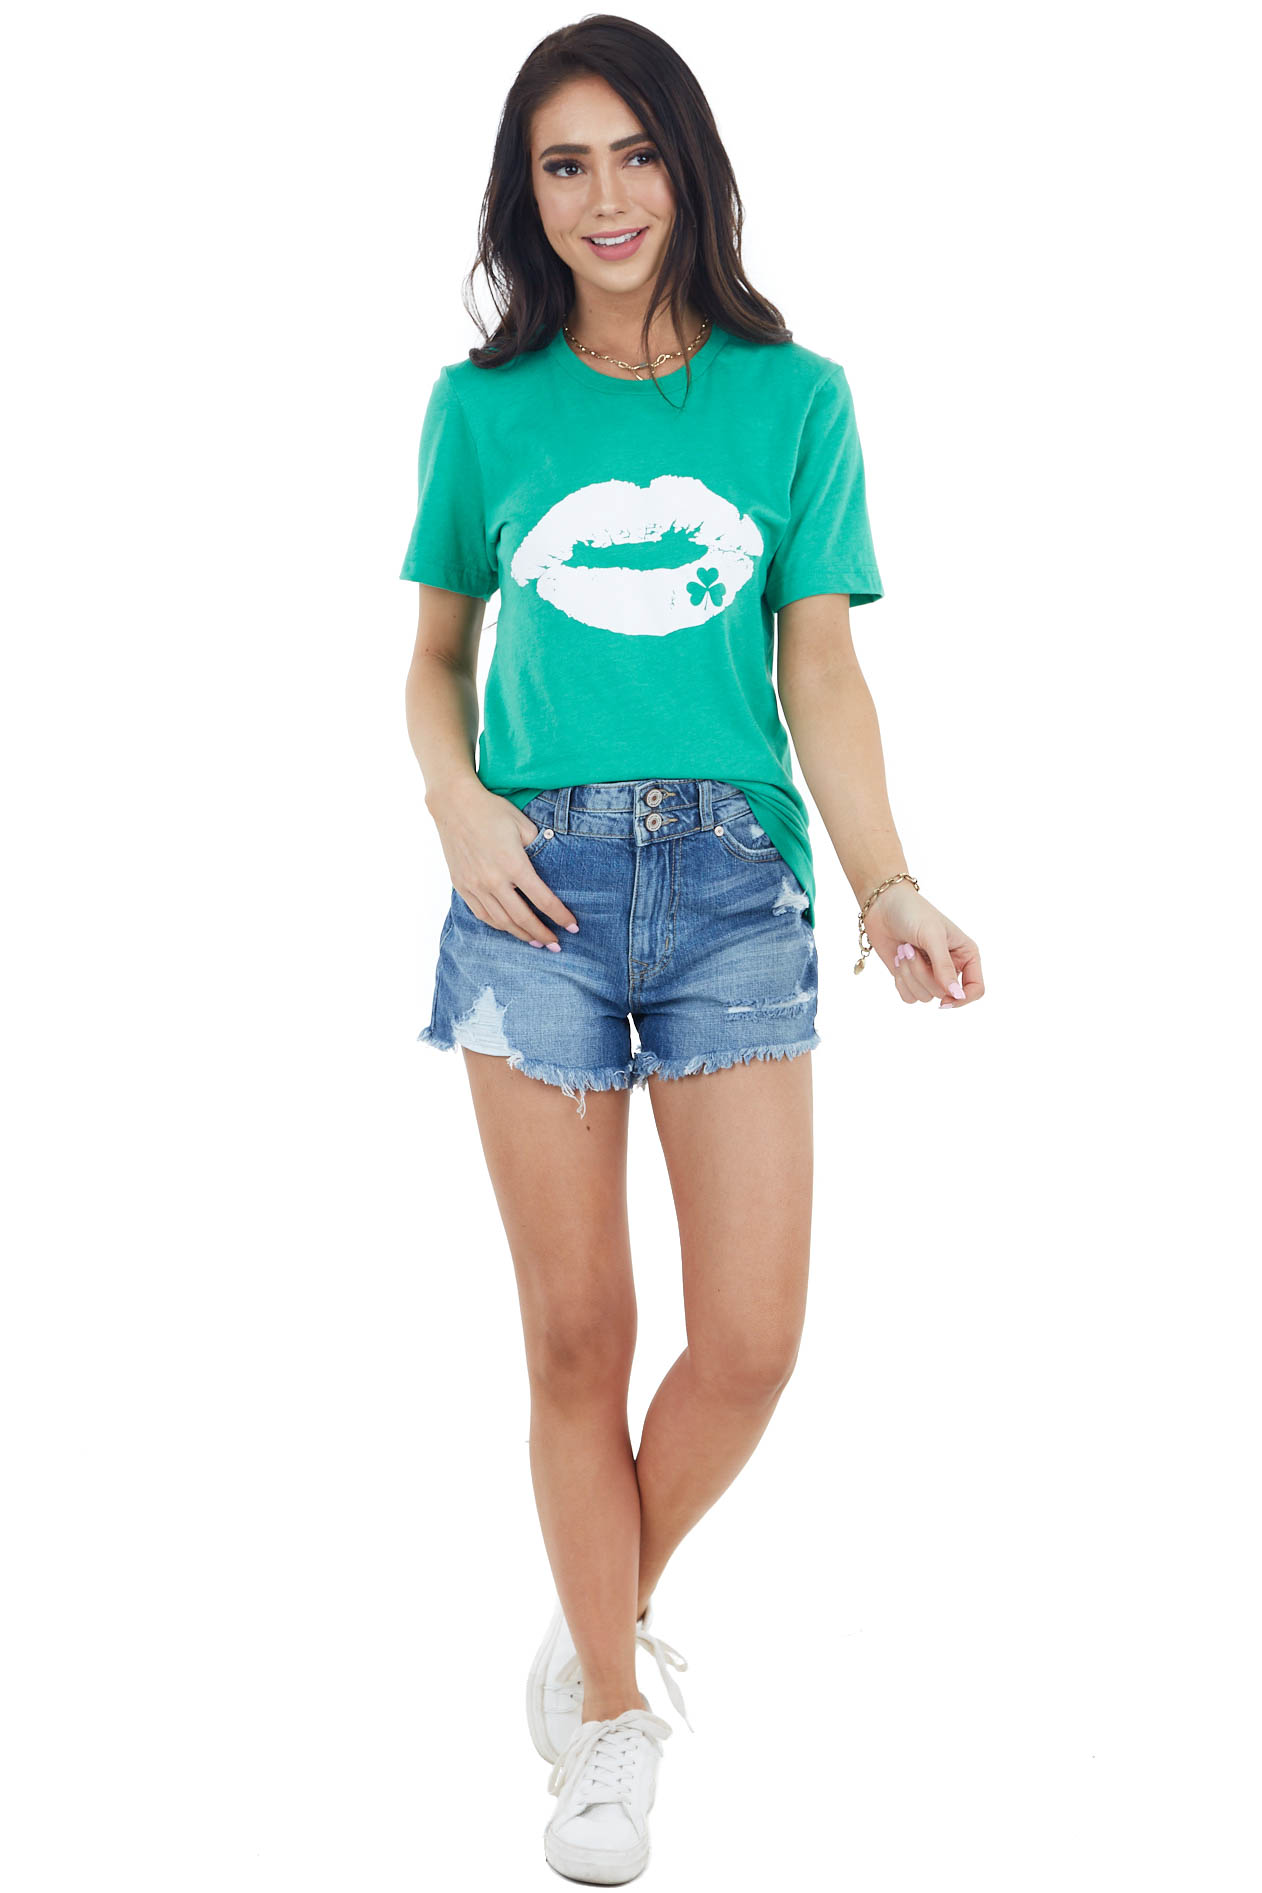 Shamrock Green Lip and Clover Graphic Tee with Short Sleeves